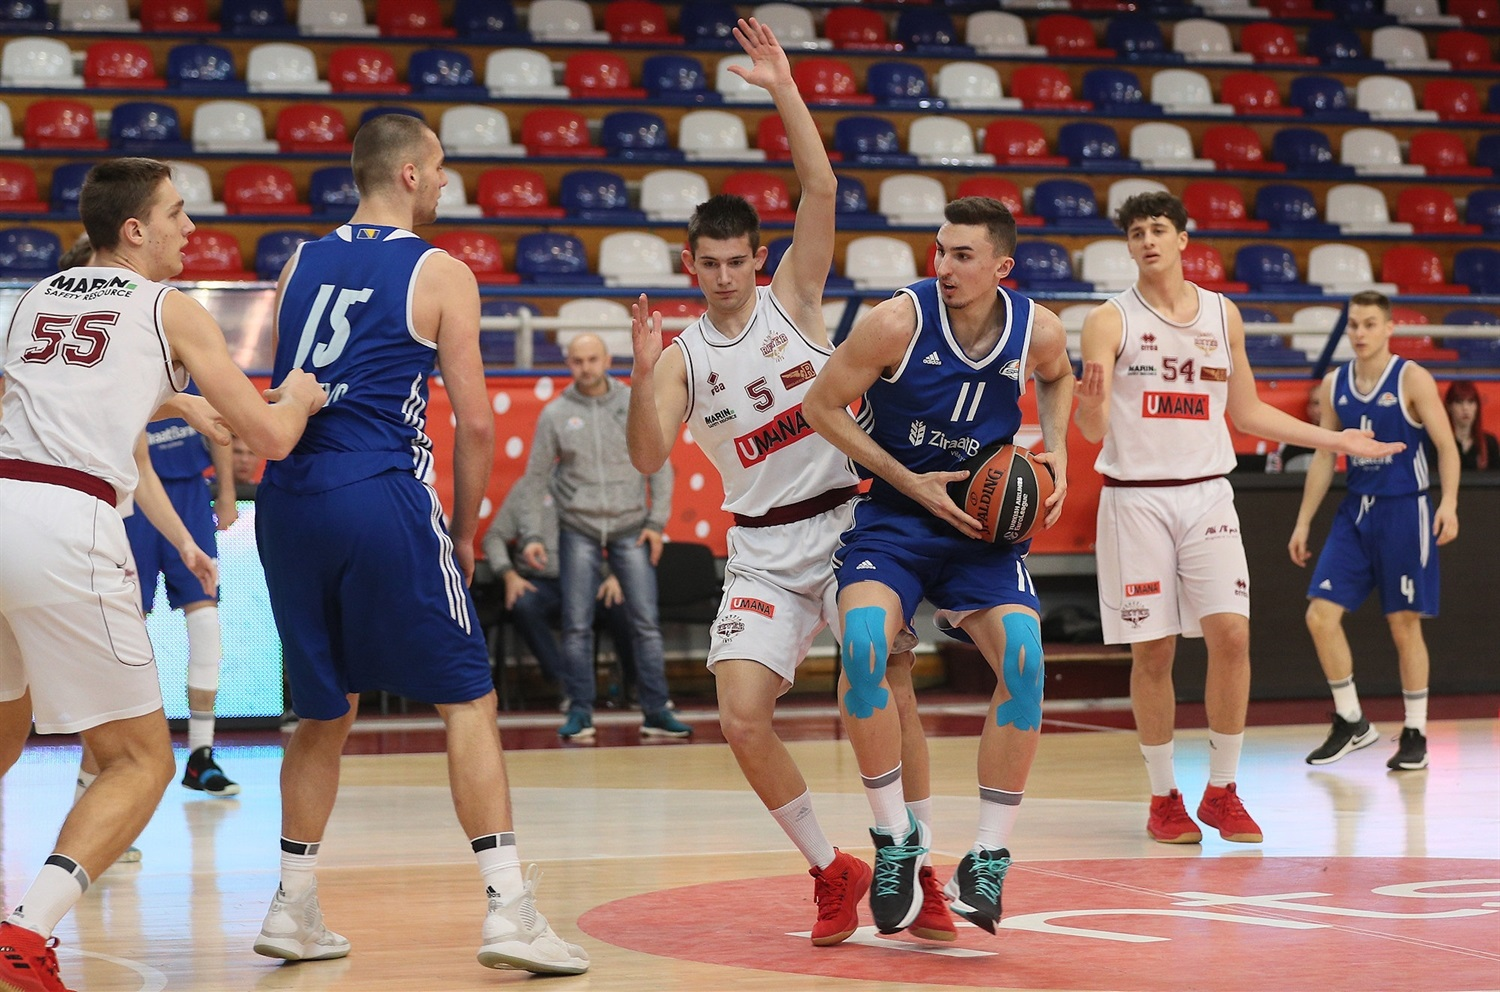 Deni Radak - U18 Spars Sarajevo - ANGT Belgrade 2019 (photo Dragoslav Zarkovic) - JT18